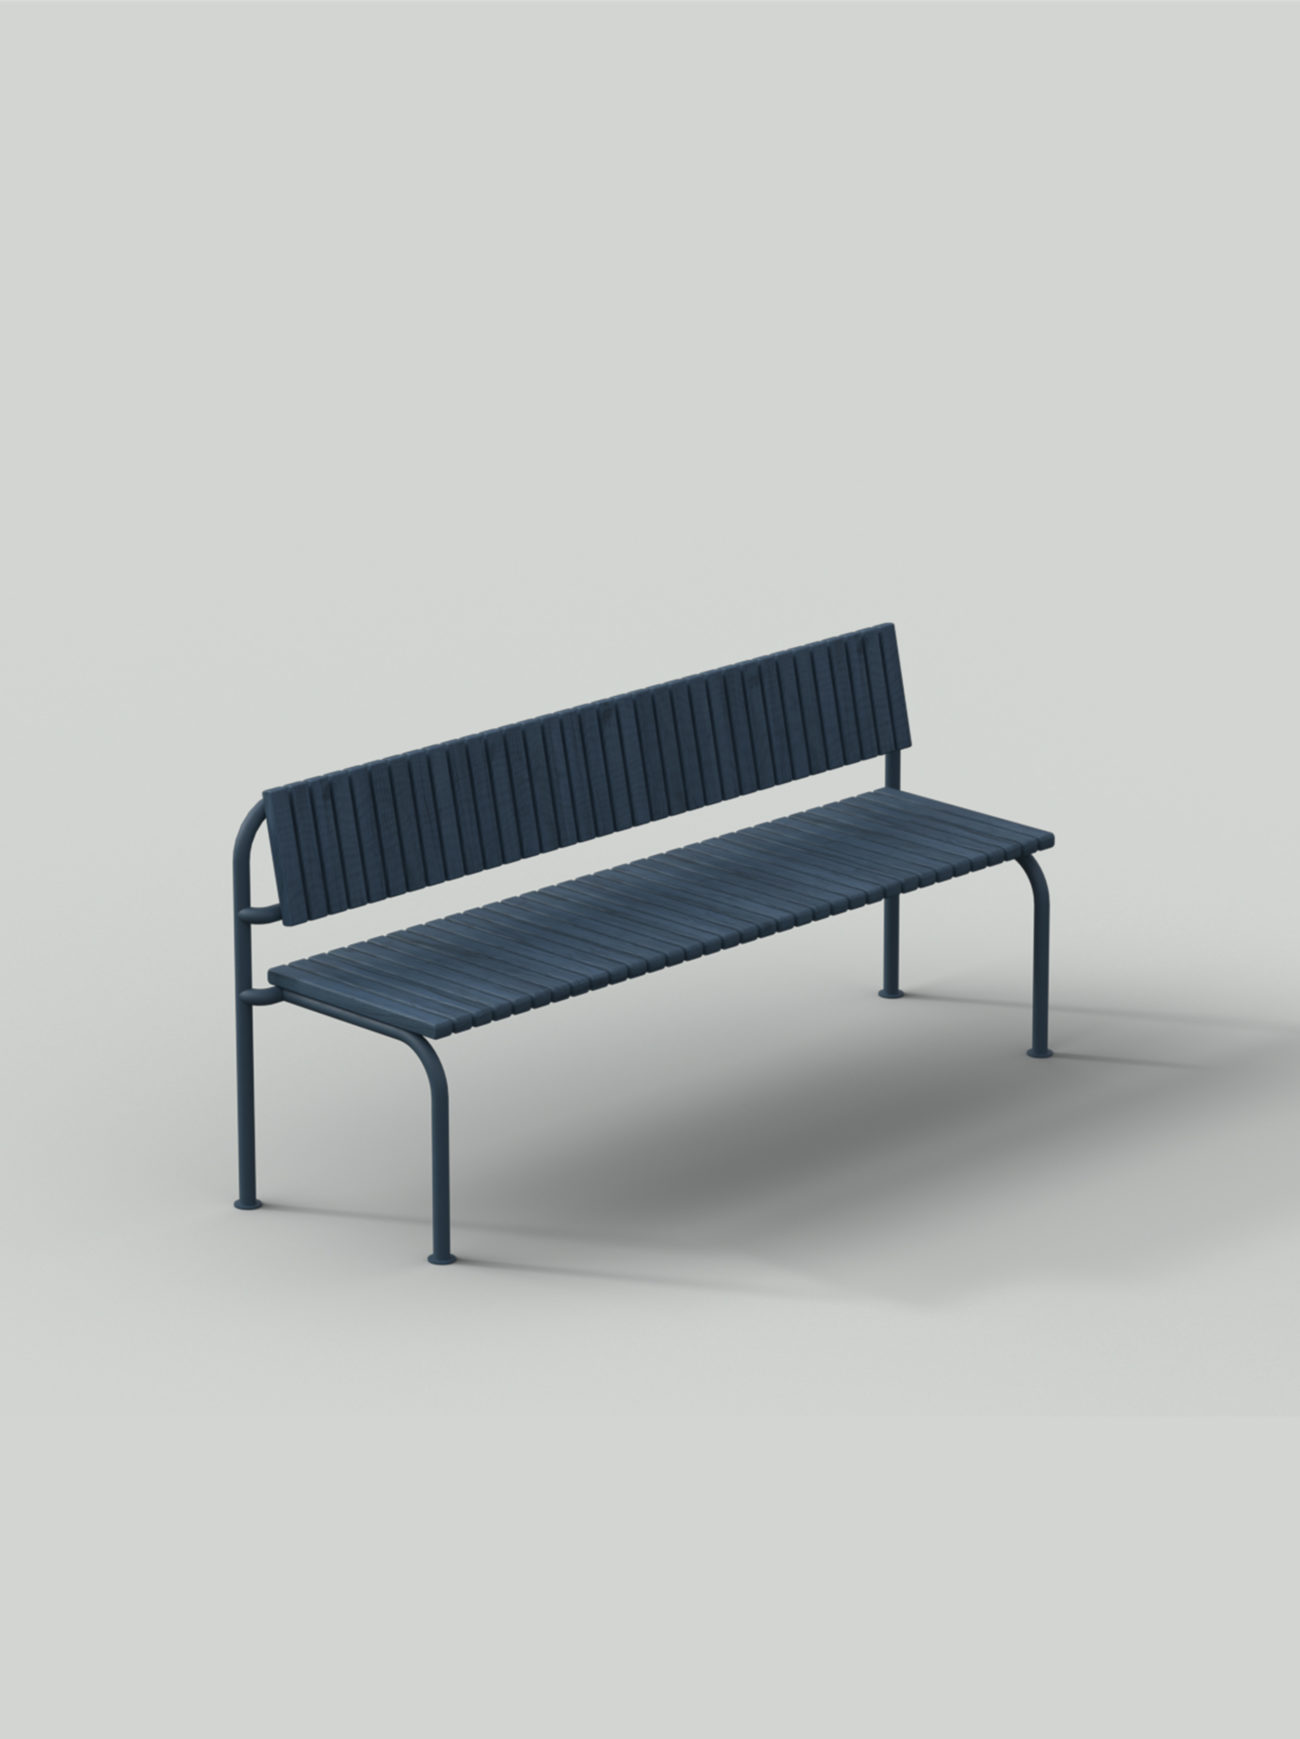 Blue sofa with steel frame and wood planks